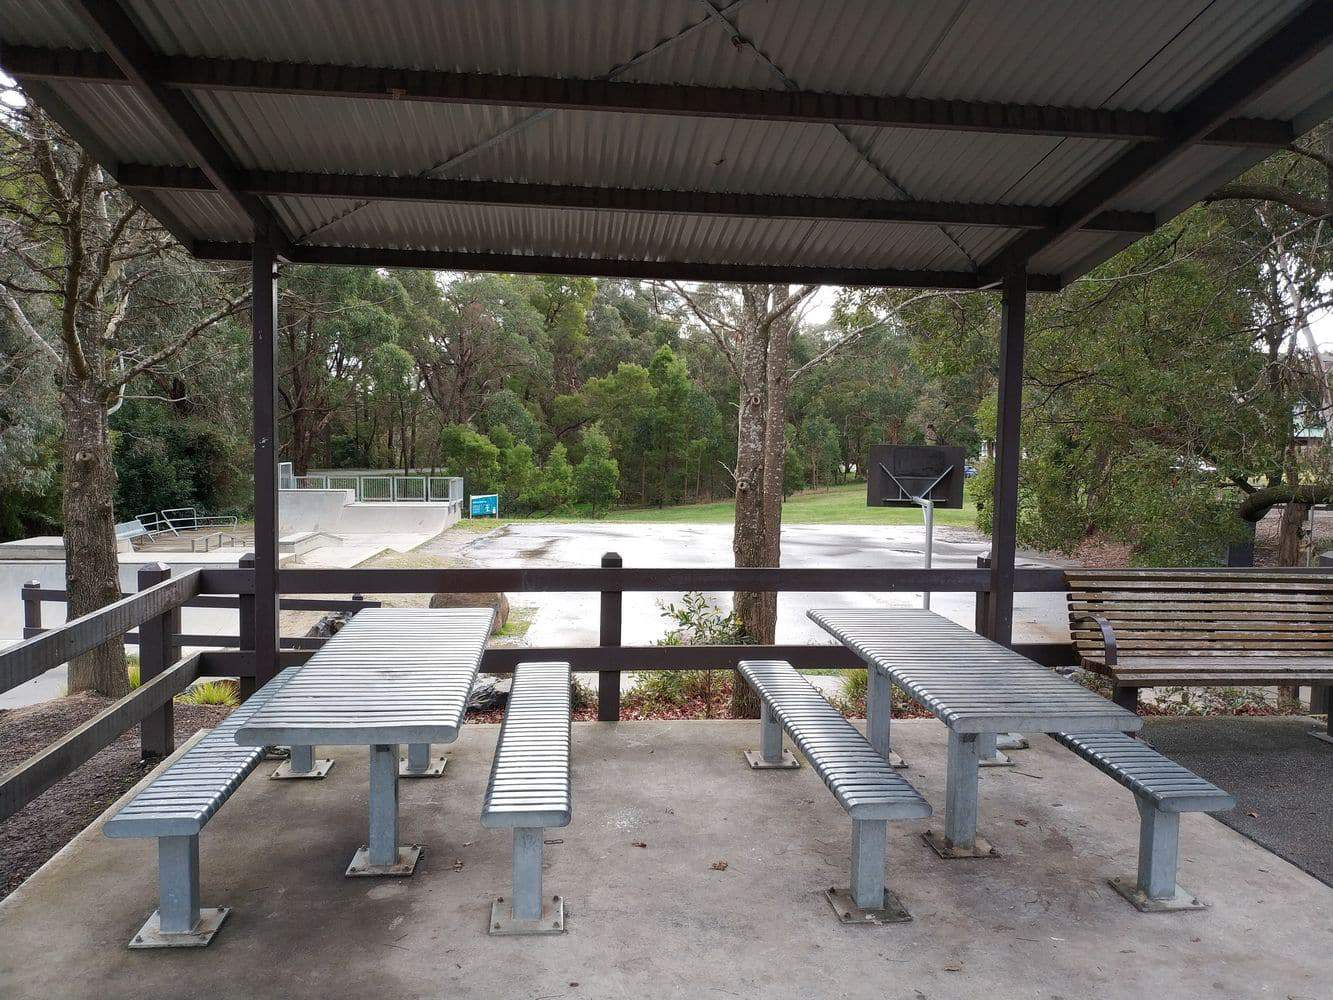 mount evelyn skate park 10